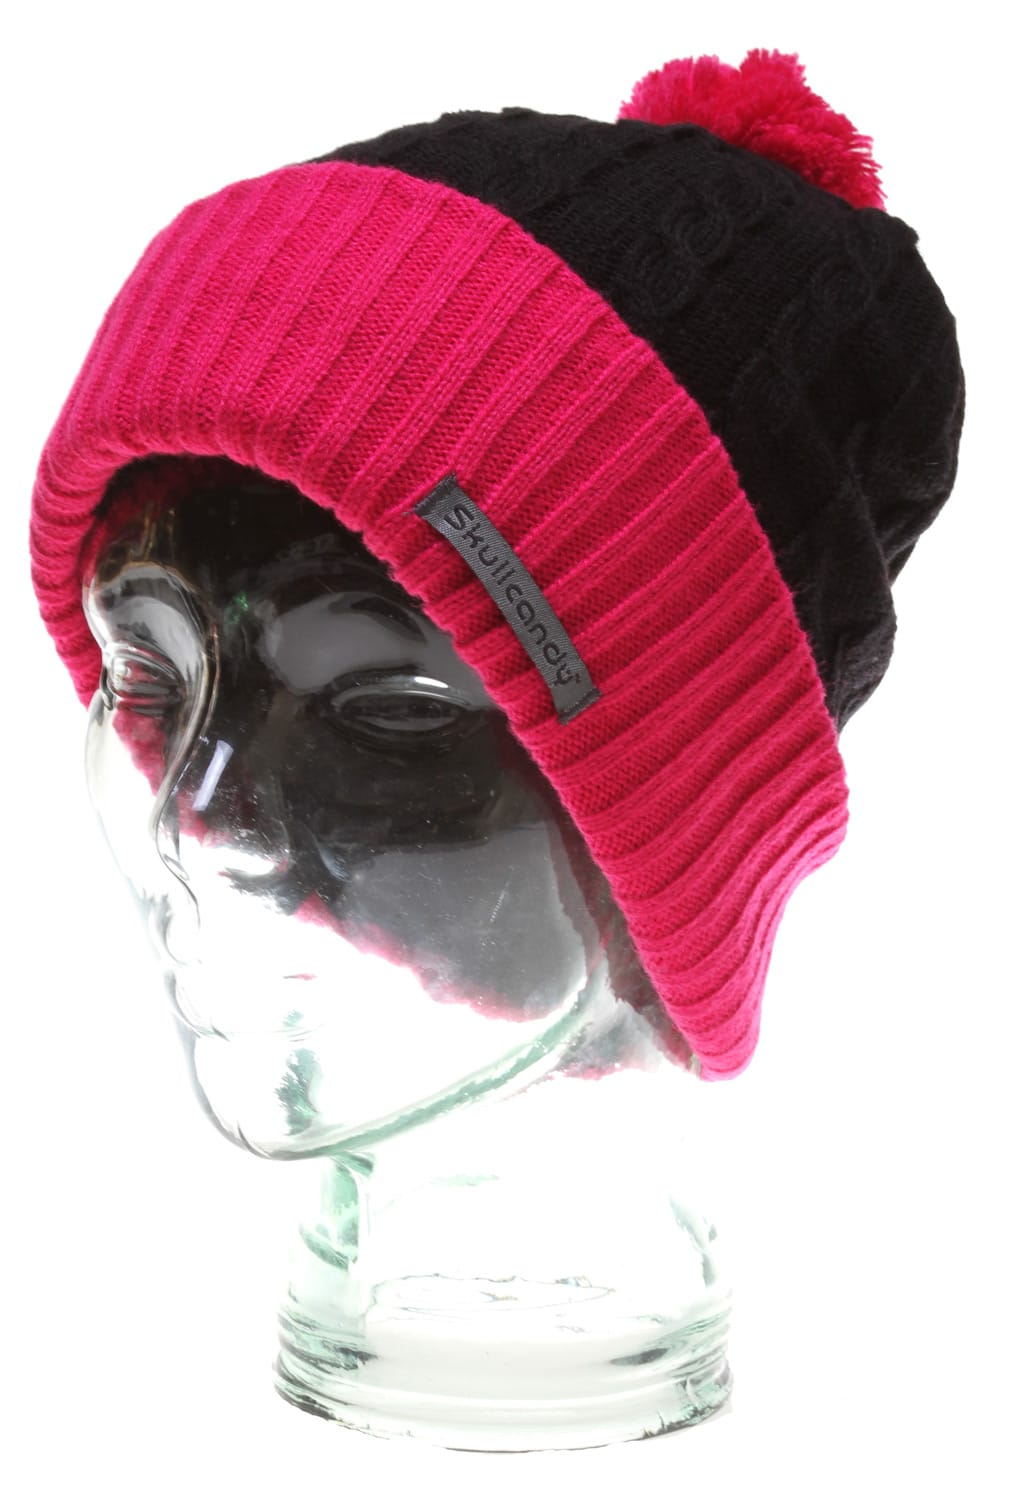 Shop for Skullcandy Orbit Audio Beanie Black Raspberry - Men's